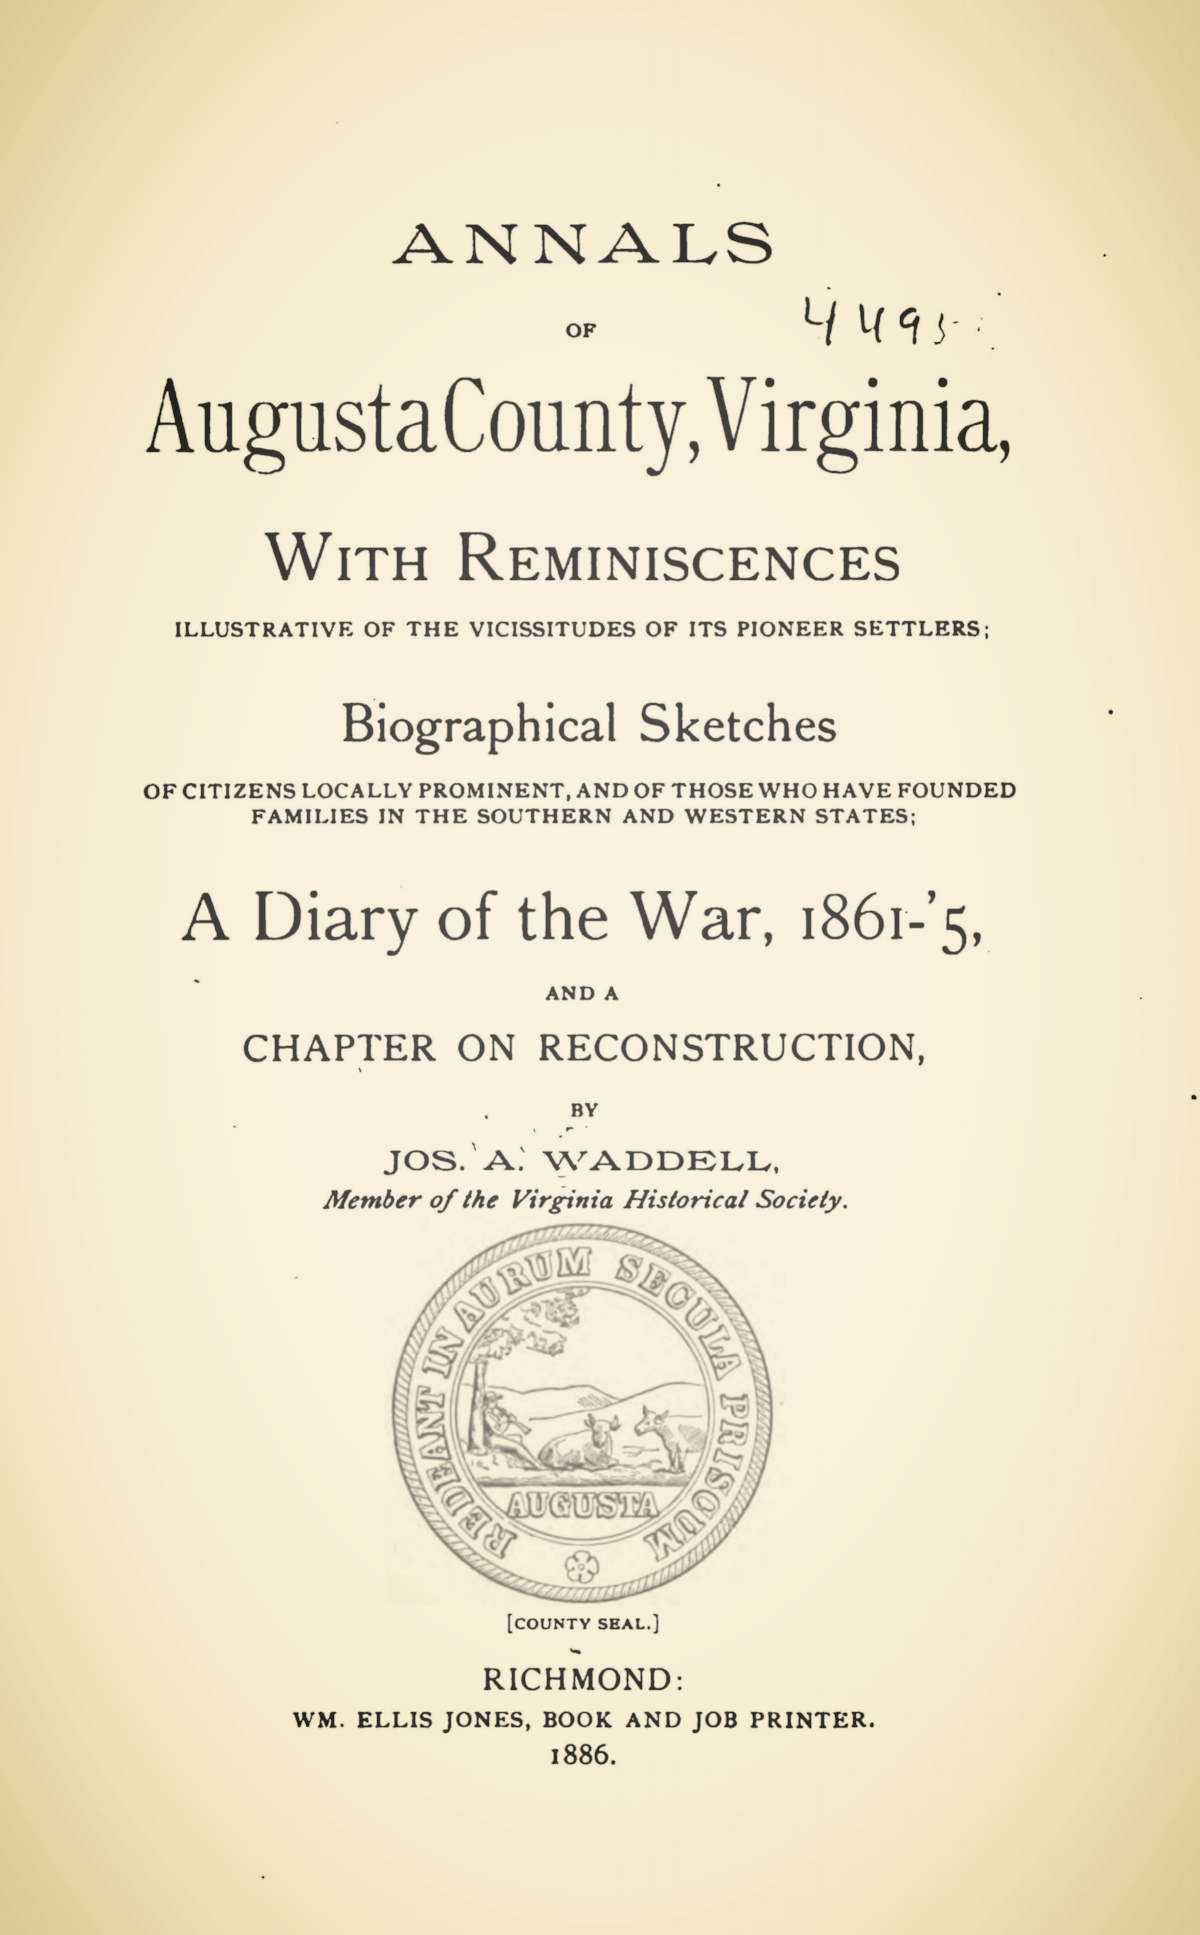 Waddell, Joseph Addison, Annals of Augusta County, Virginia, With Reminiscences Title Page.jpg